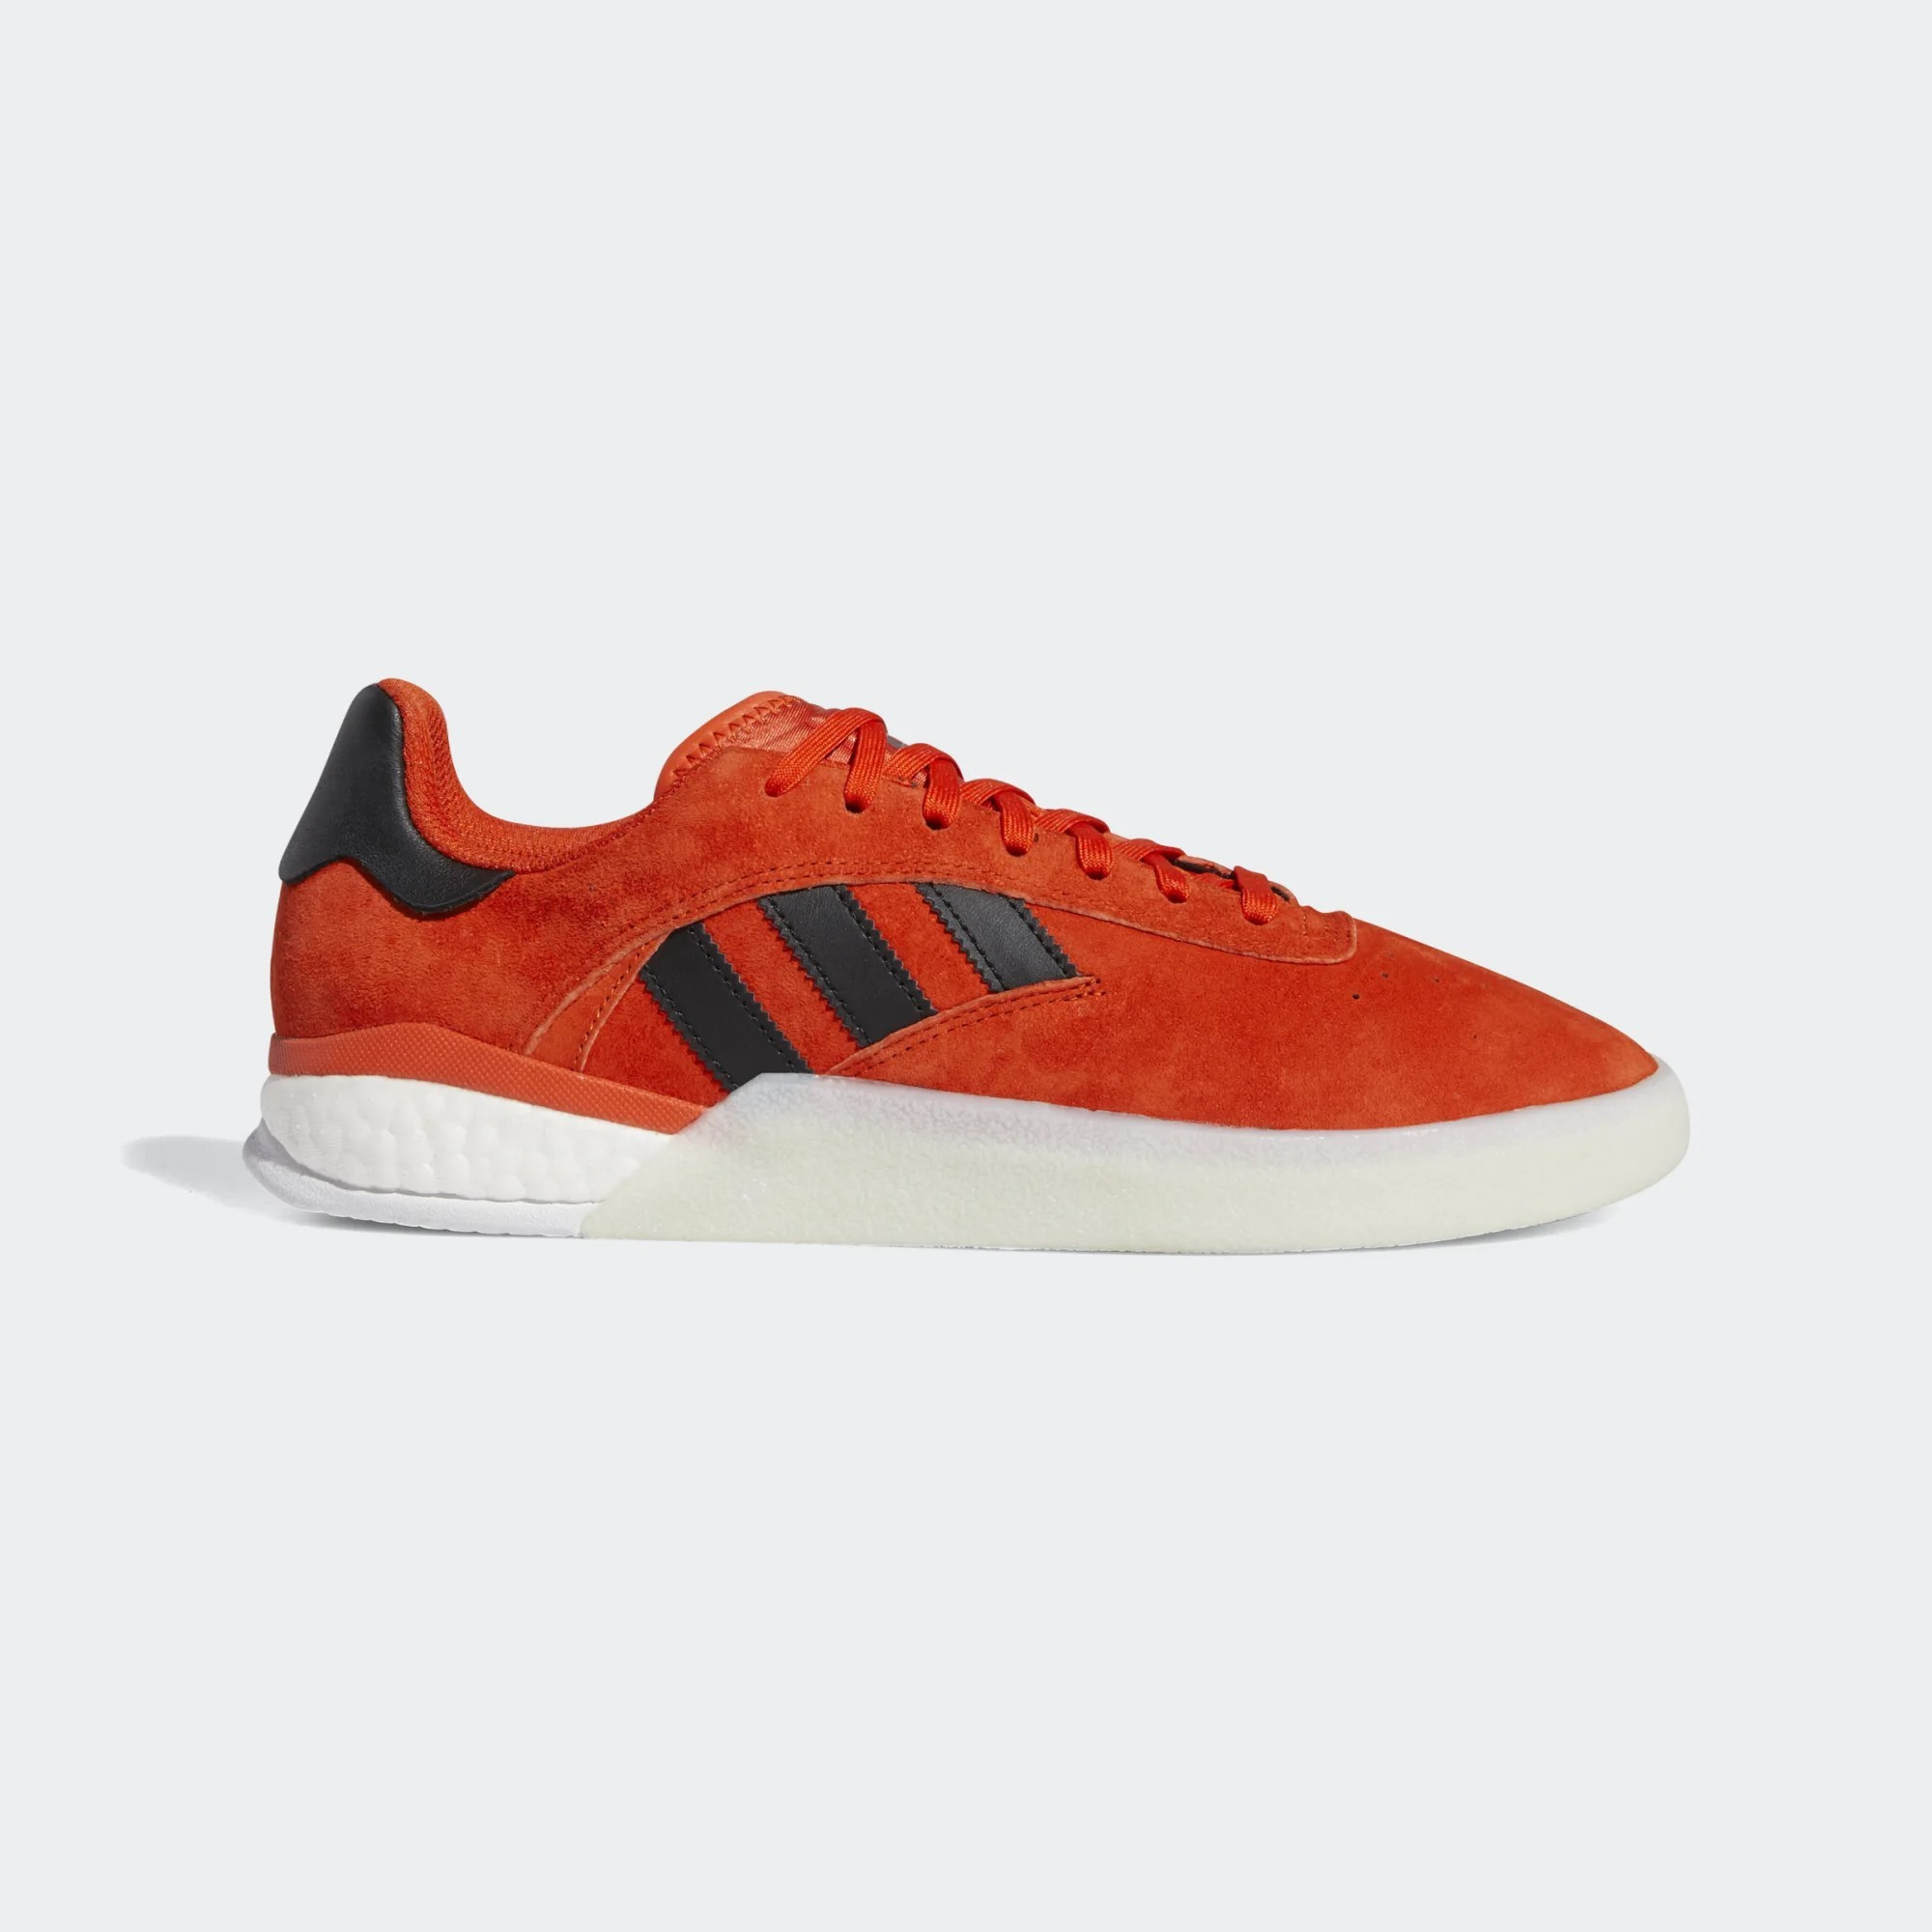 3ST.004 'Orange' adidas DB3150